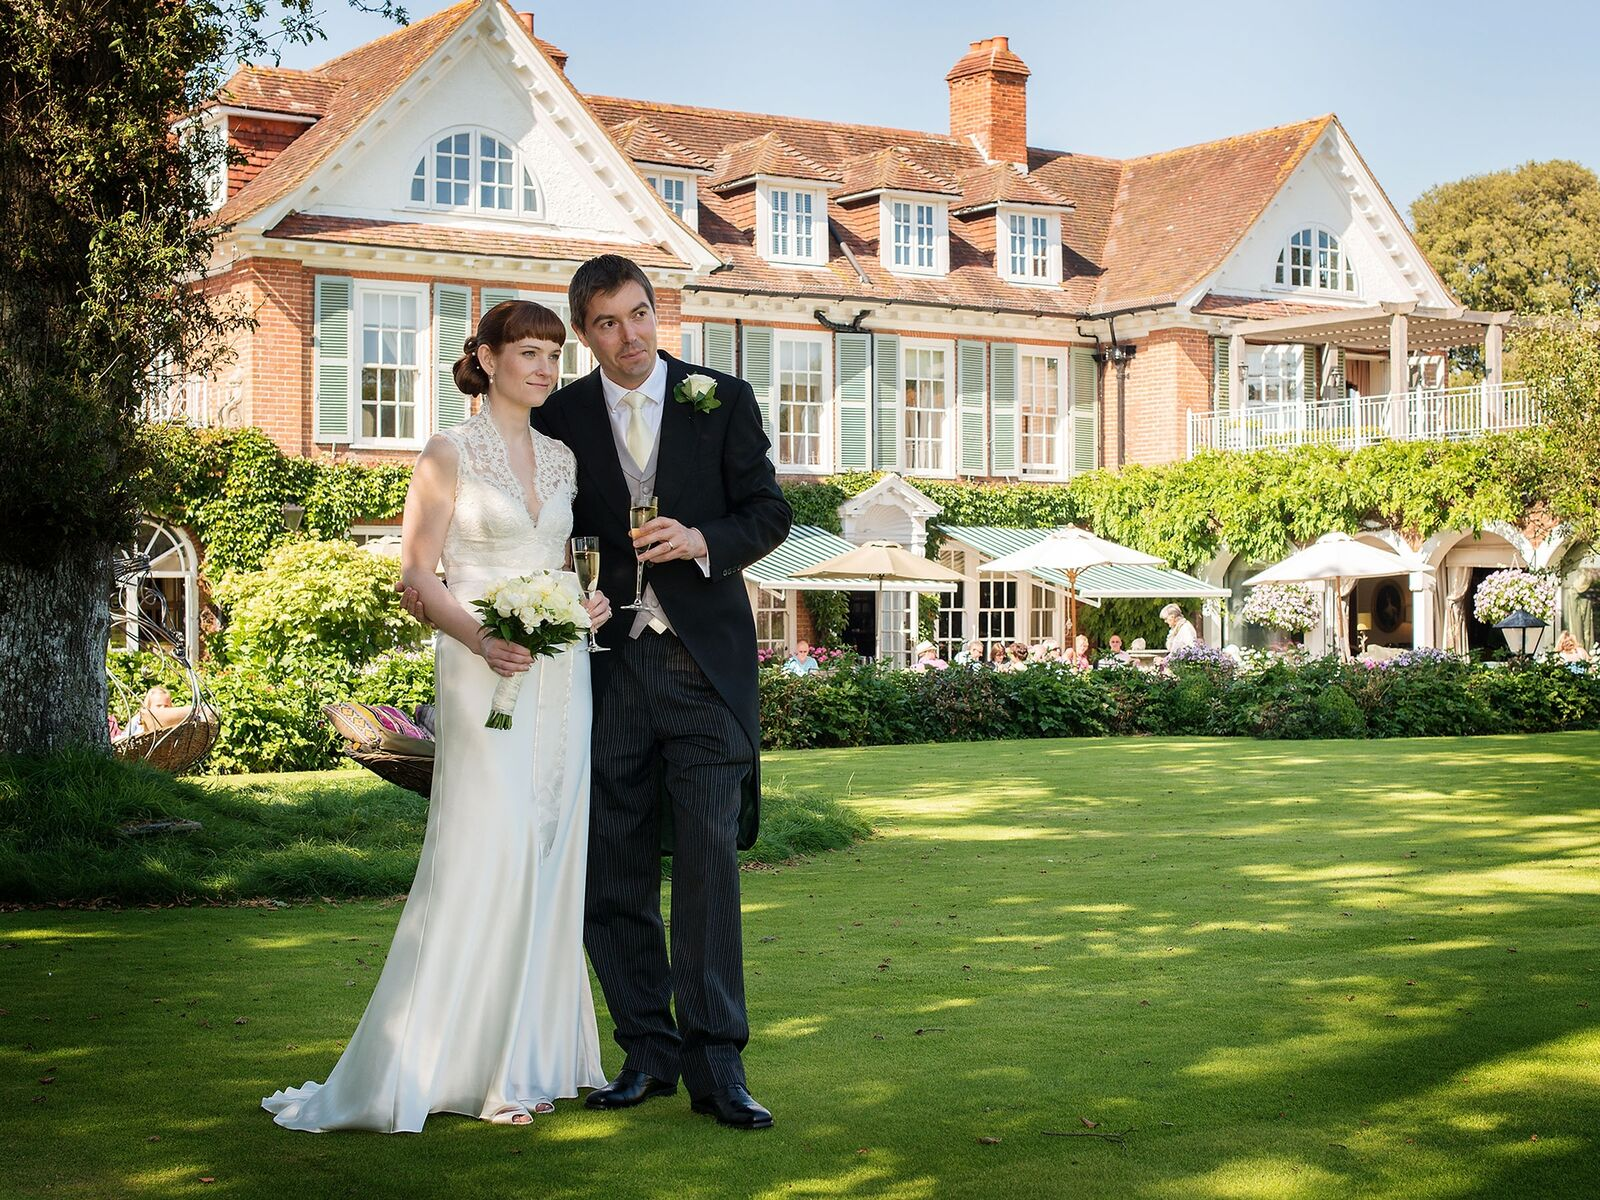 Wedding Venue Of The Month – Chewton Glen